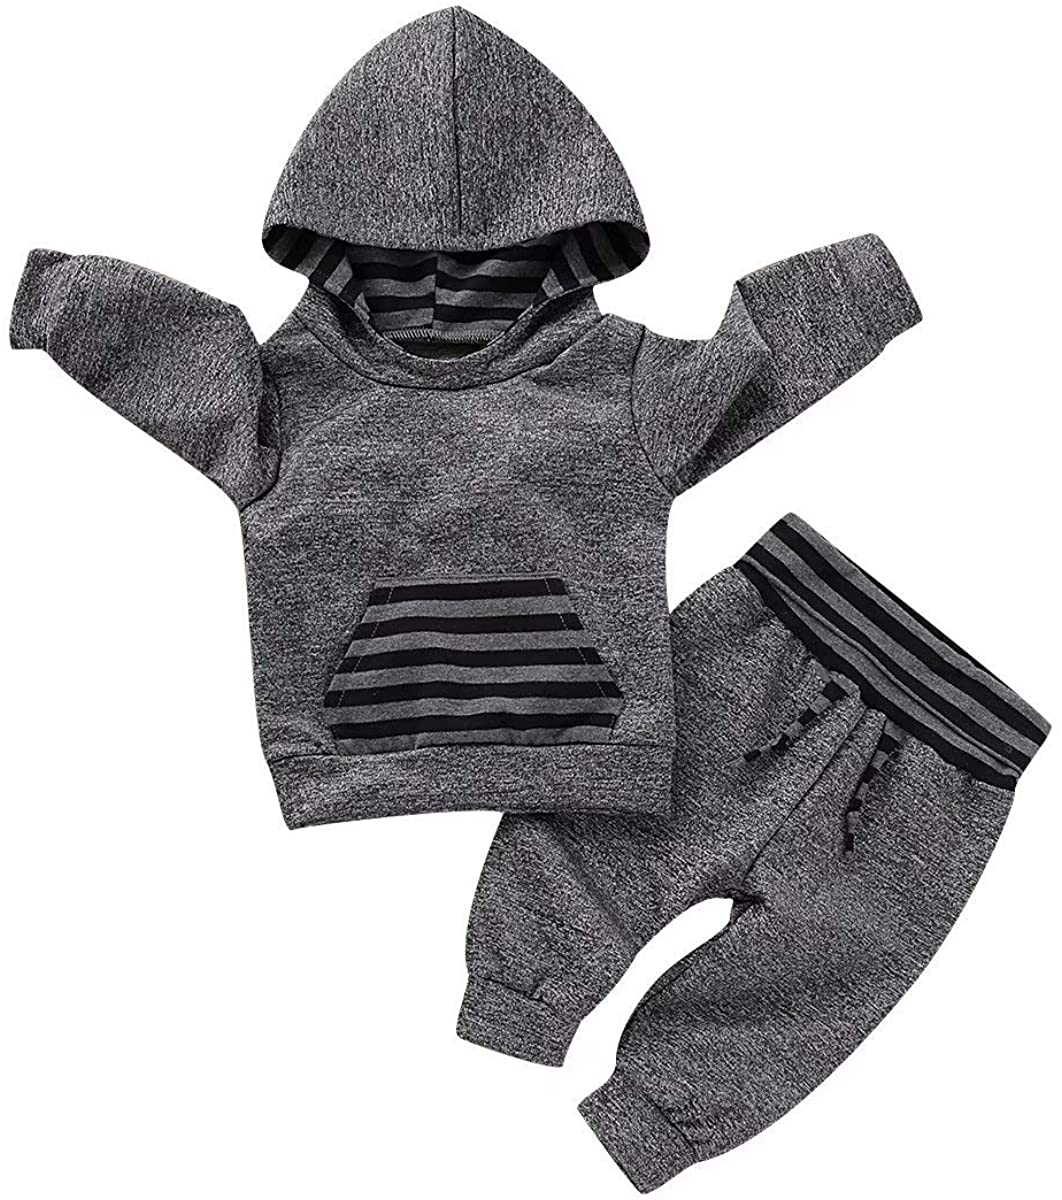 Infant Baby Boys Girls Fall Outfit Plaid Pocket Hoodie Sweatshirt Shirt+Pants Winter Clothes Set